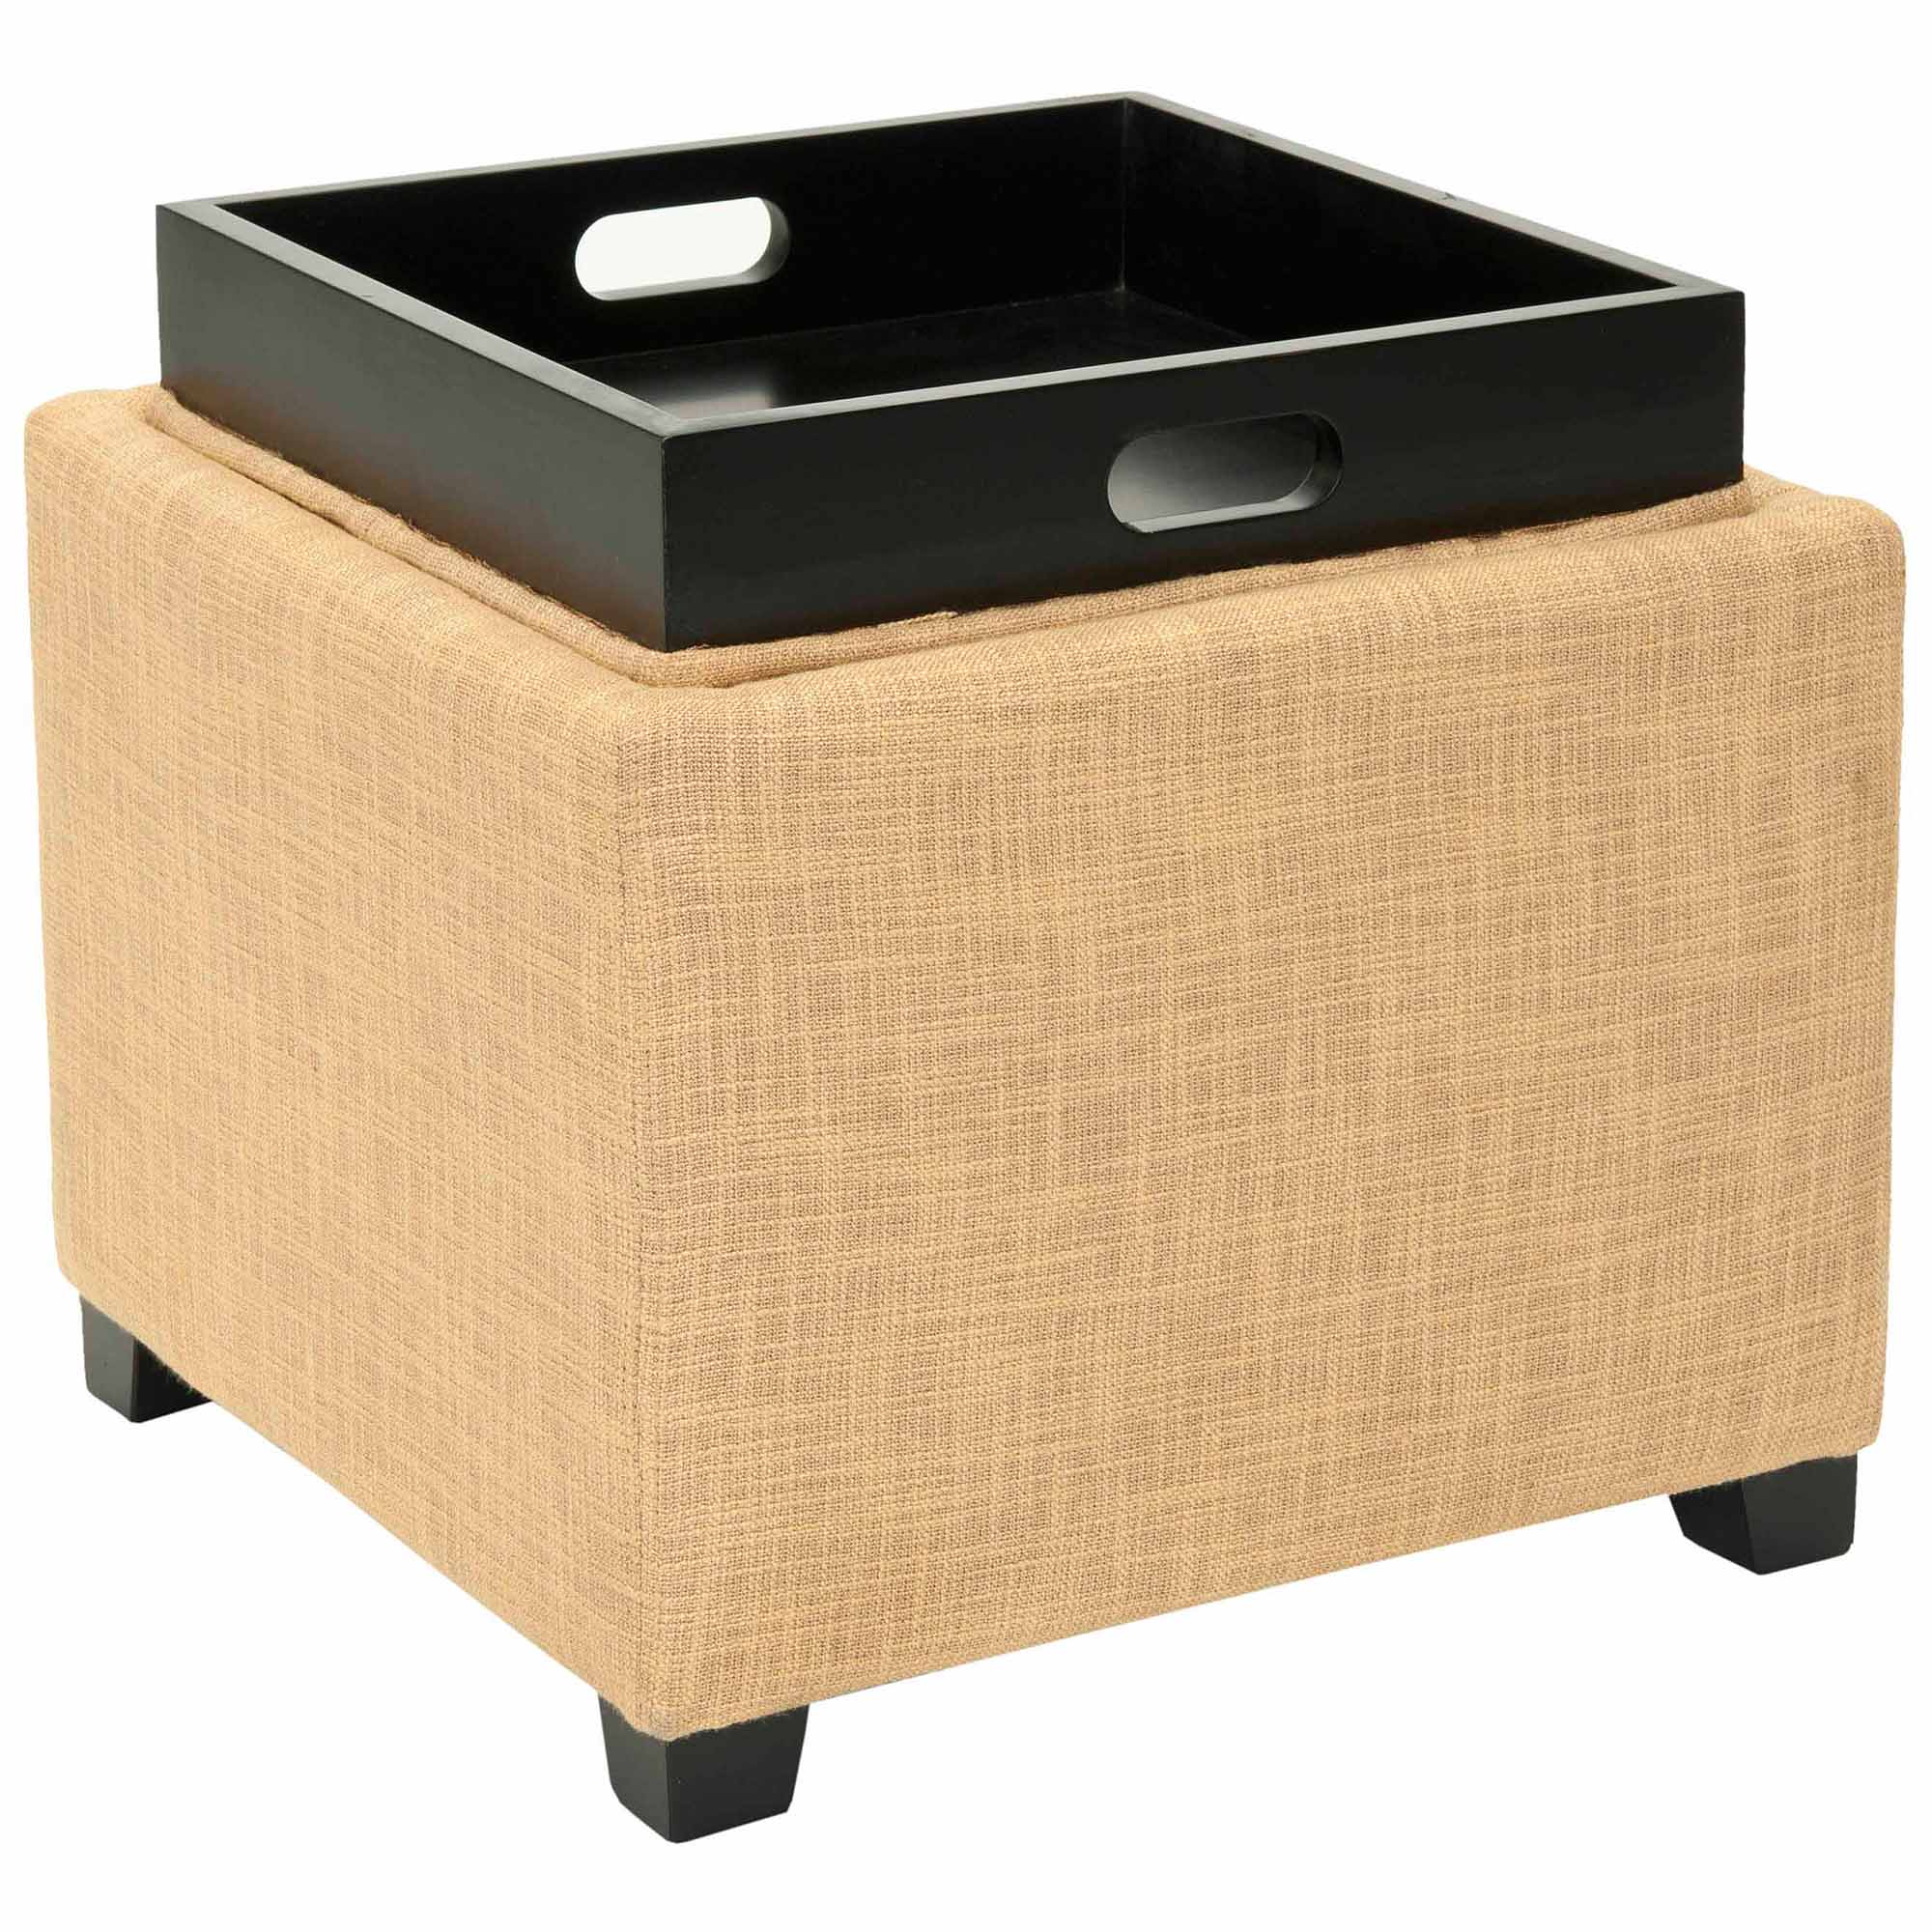 Safavieh Harrison Single Tray Ottoman, Multiple Colors